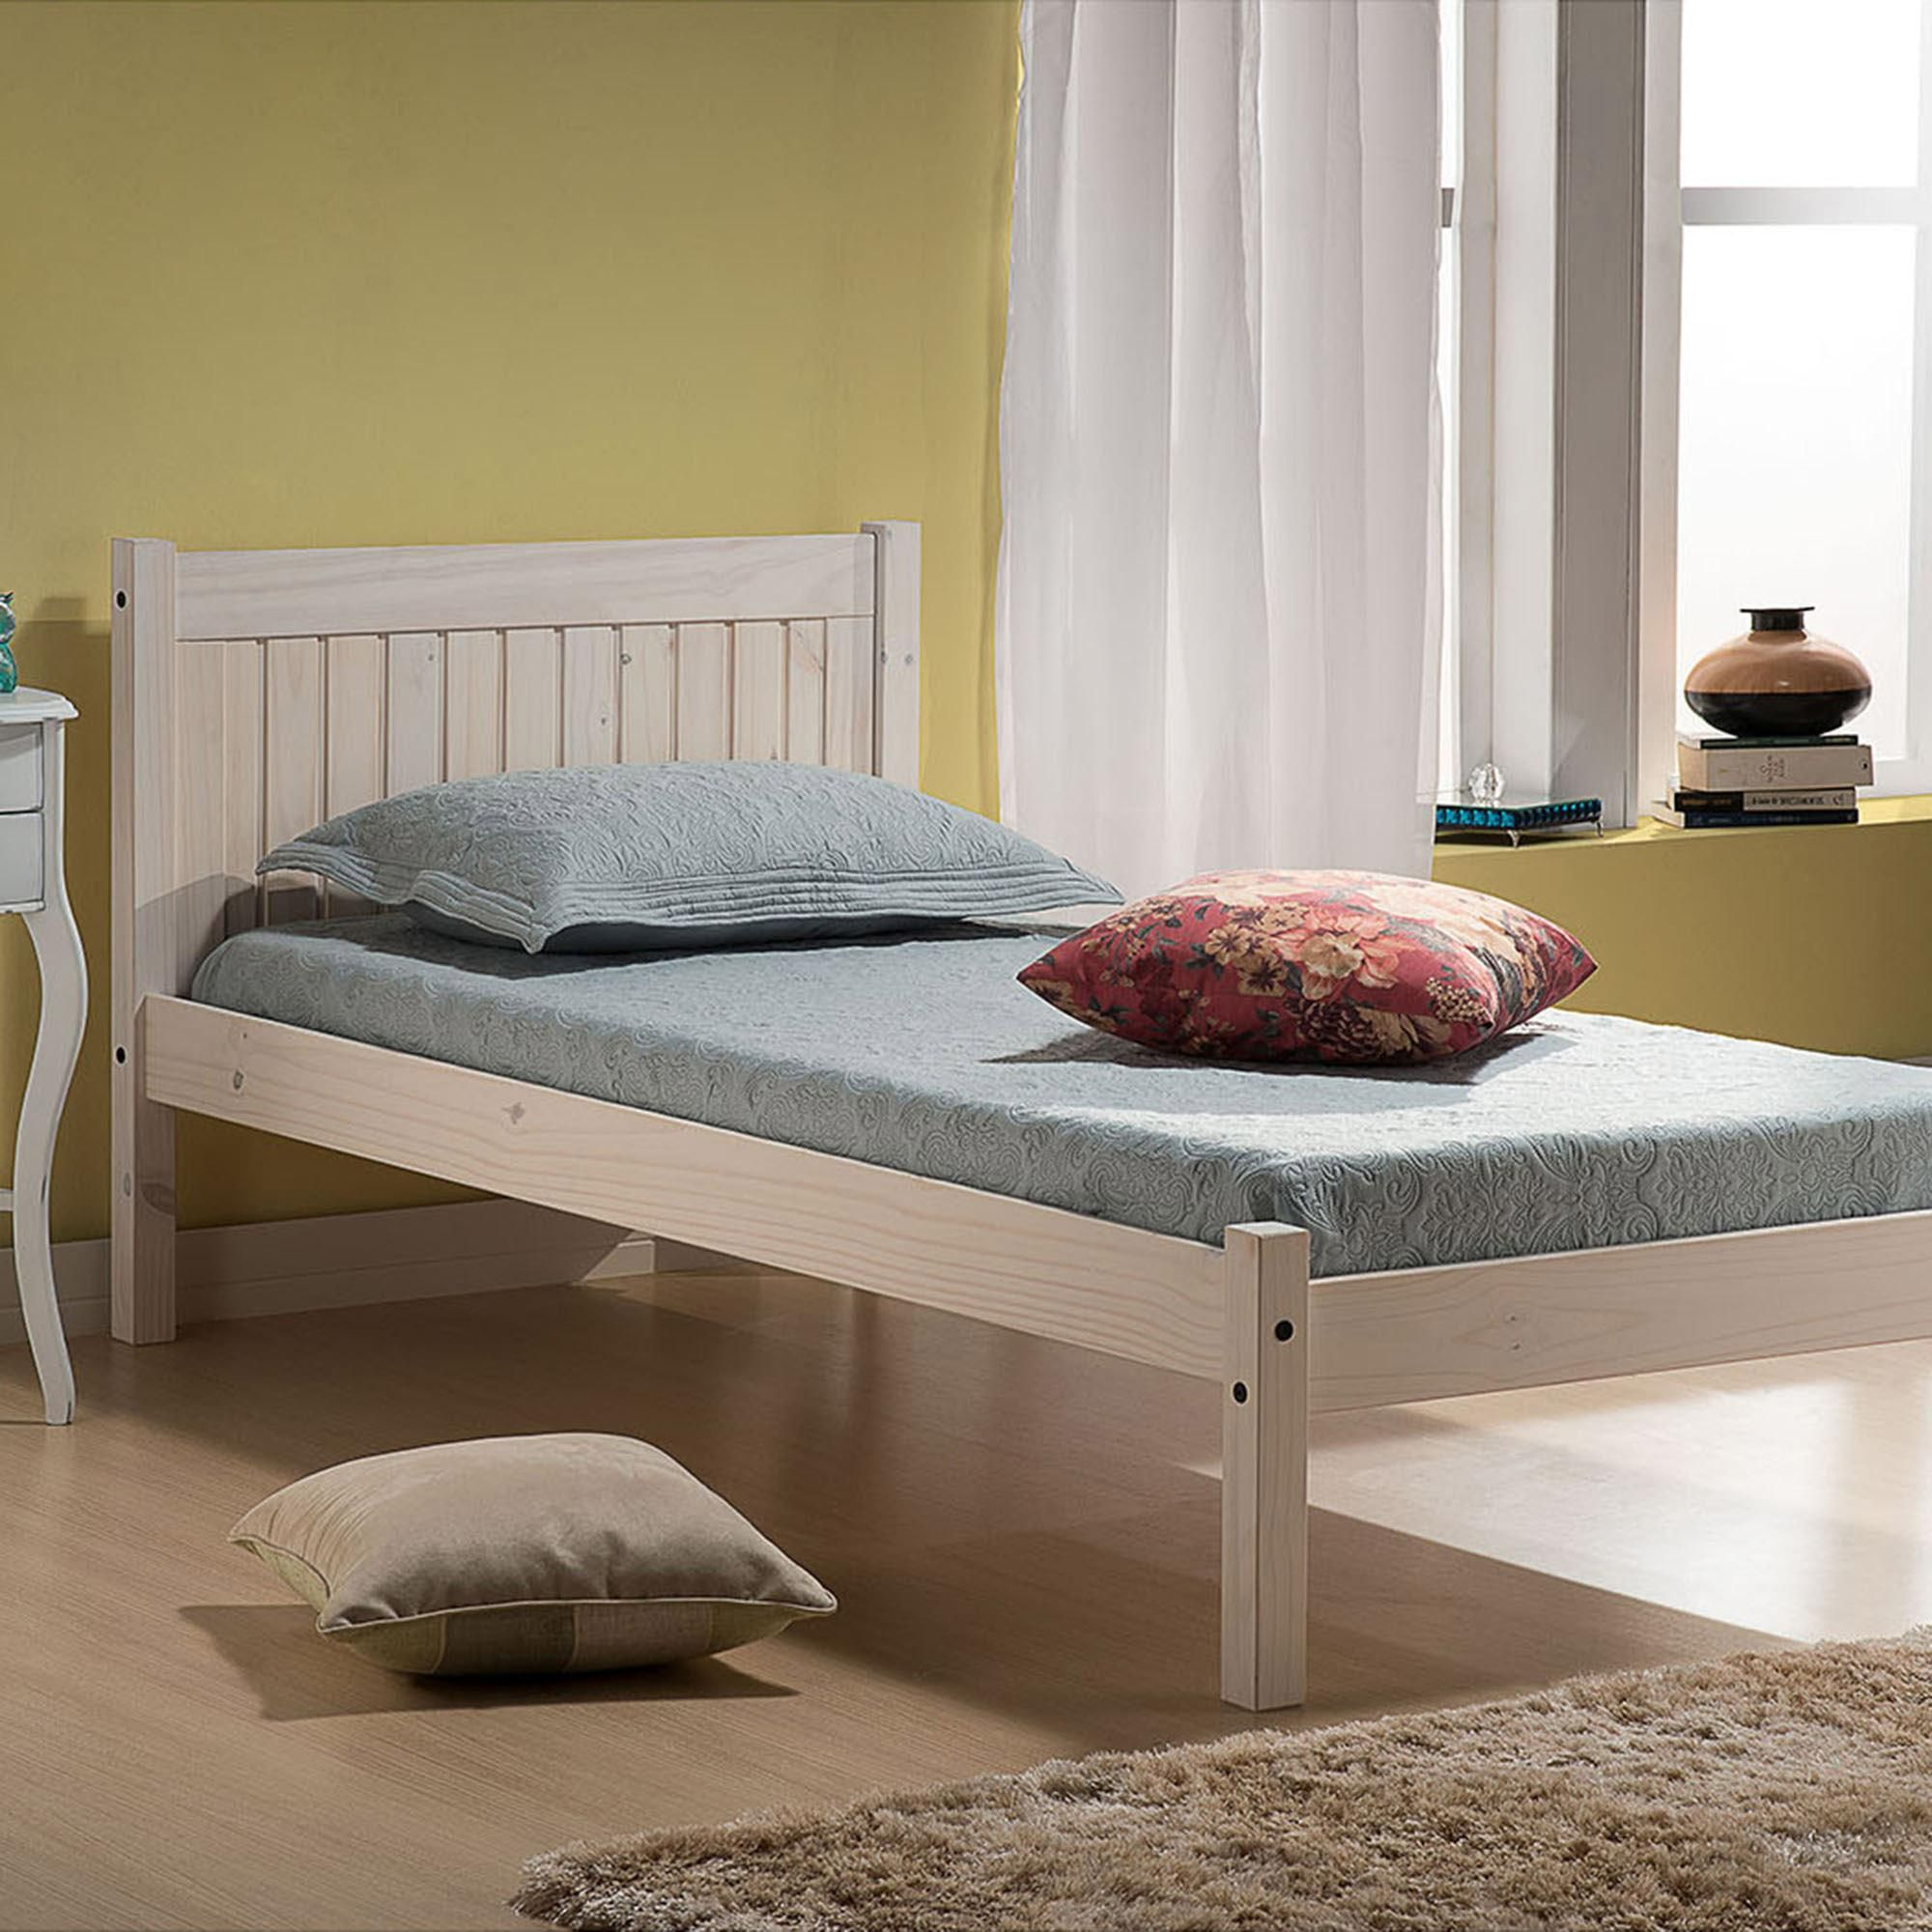 Rio Whitewash Bedstead In 2020 Wooden Bed Frames Bed Frame